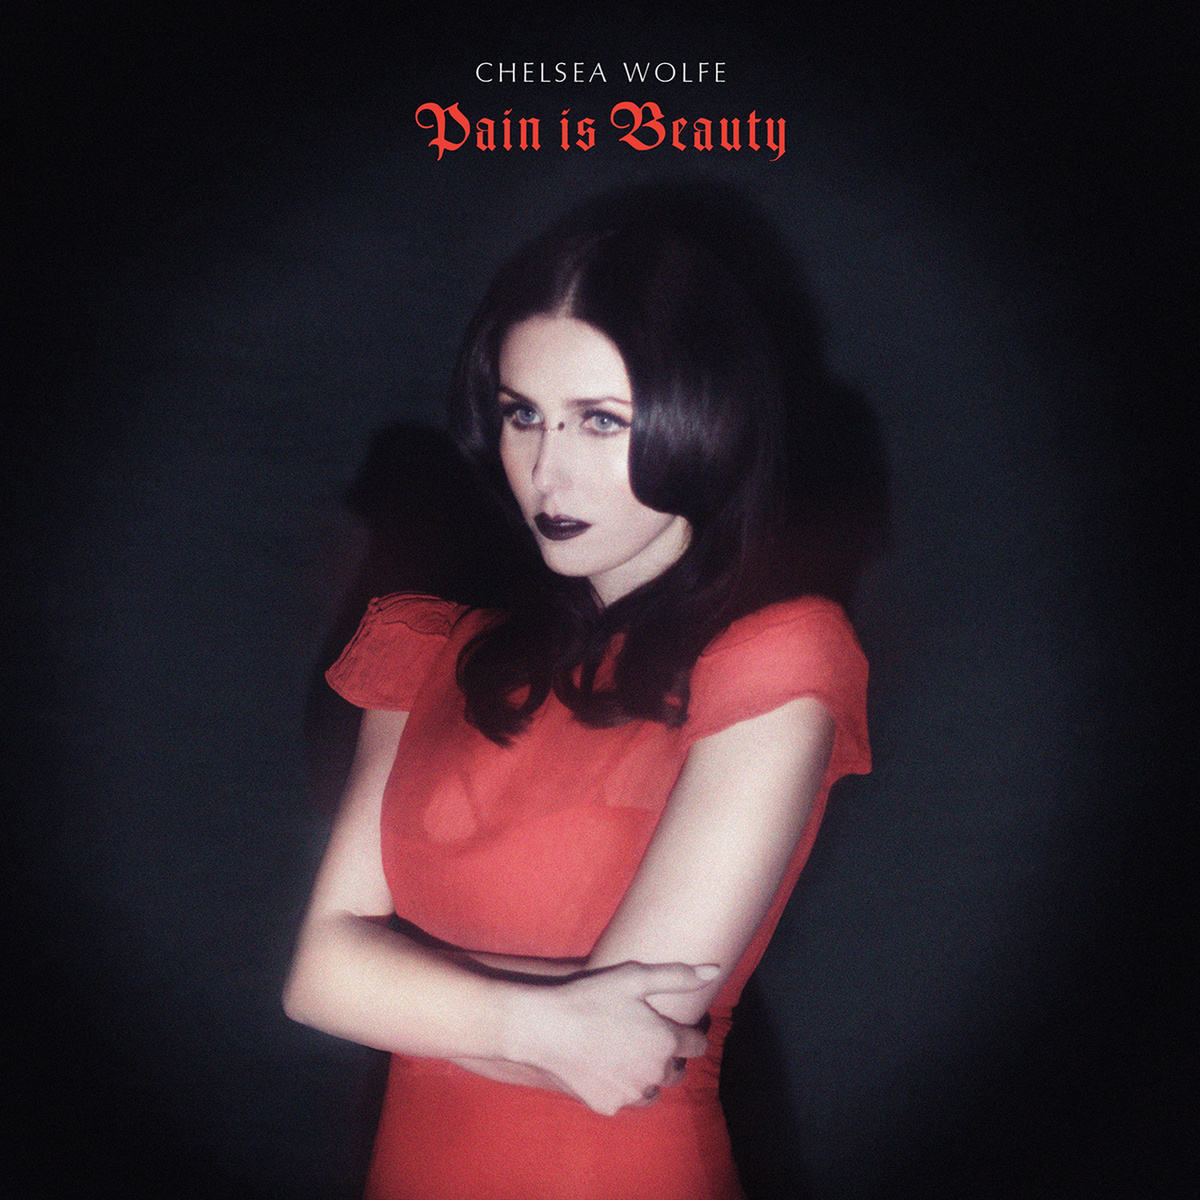 Chelsea Wolfe (2013) Pain Is Beauty